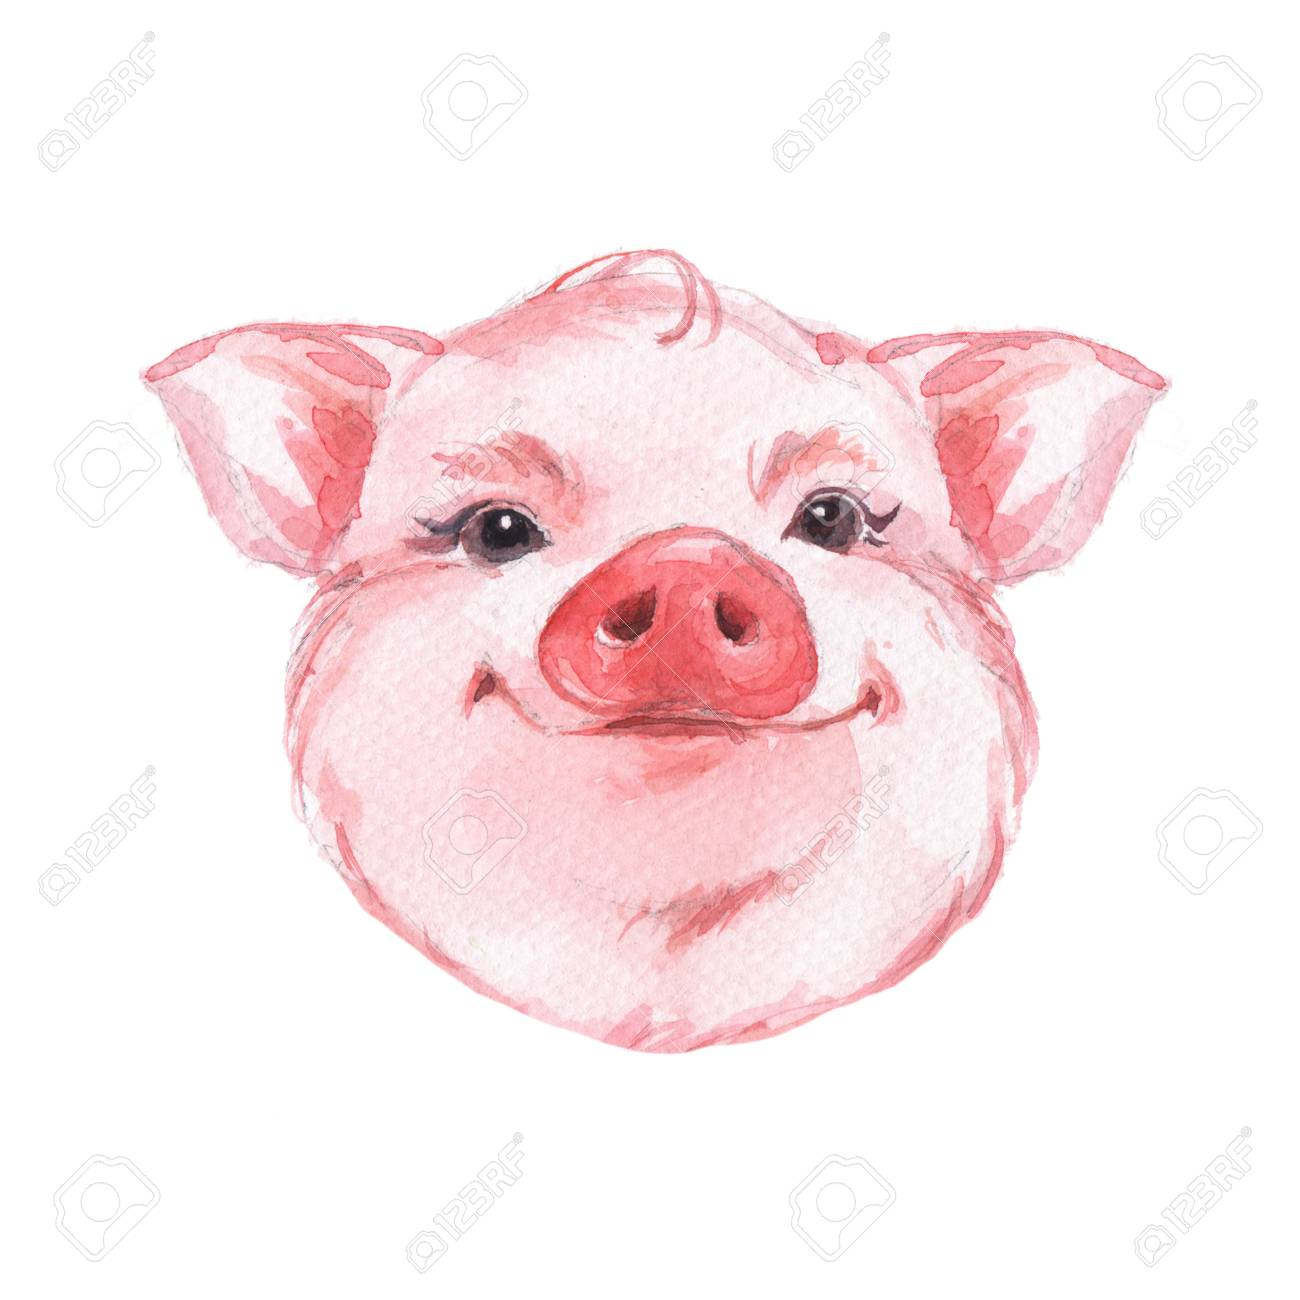 Funny pig. Cute watercolor animal face. Isolated on white - 68133644